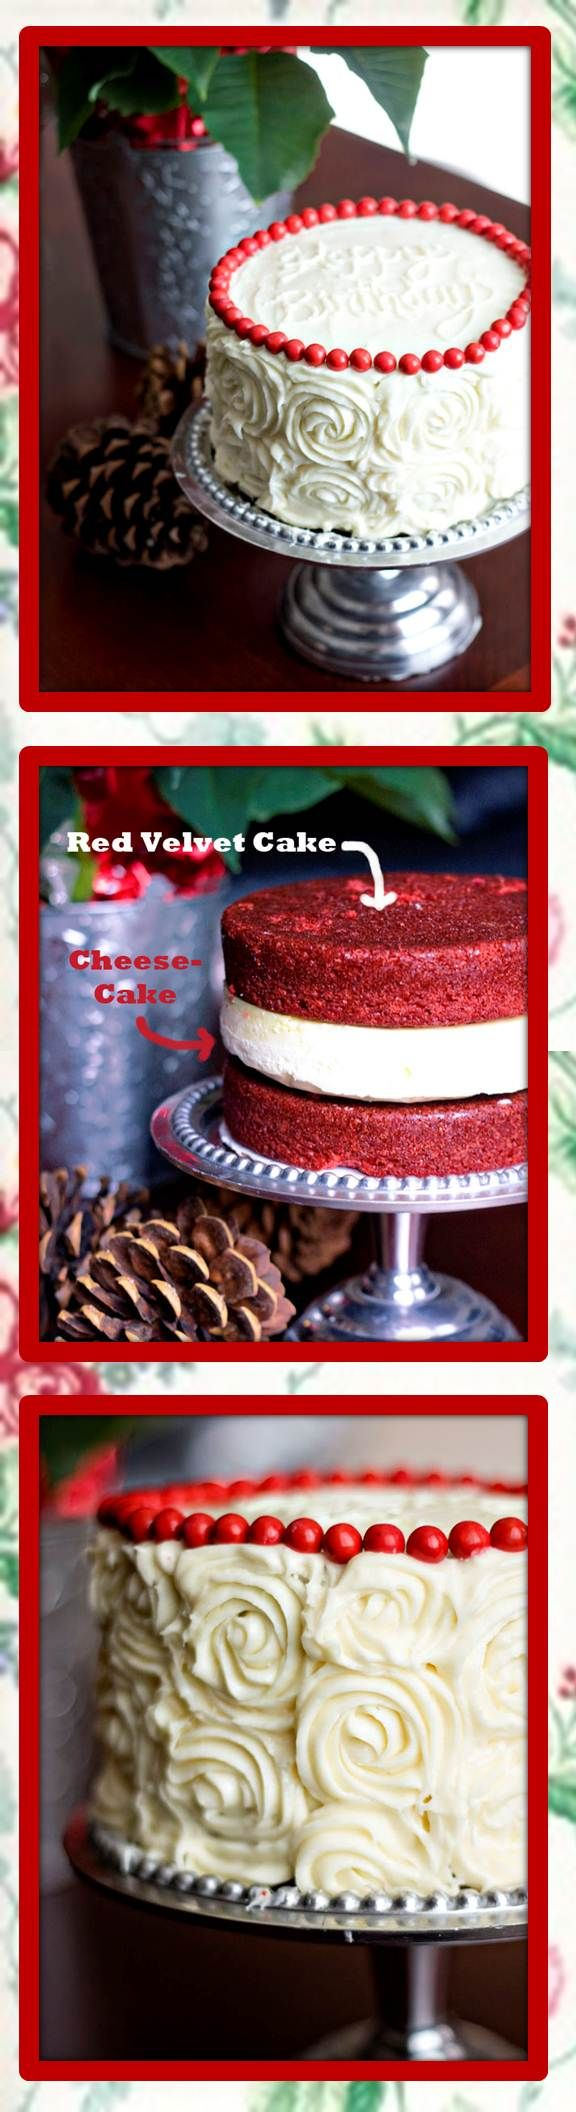 "Red Velvet Cheesecake: This cake has a layer of creamy cheesecake sandwiched between two layers of moist red velvet cake. This recipe concept is borrowed from the Cheesecake Factory's menu, the Ultimate Red Velvet Cake Cheesecake. ""Ultimate"" is definitely an accurate description for this cake masterpiece."